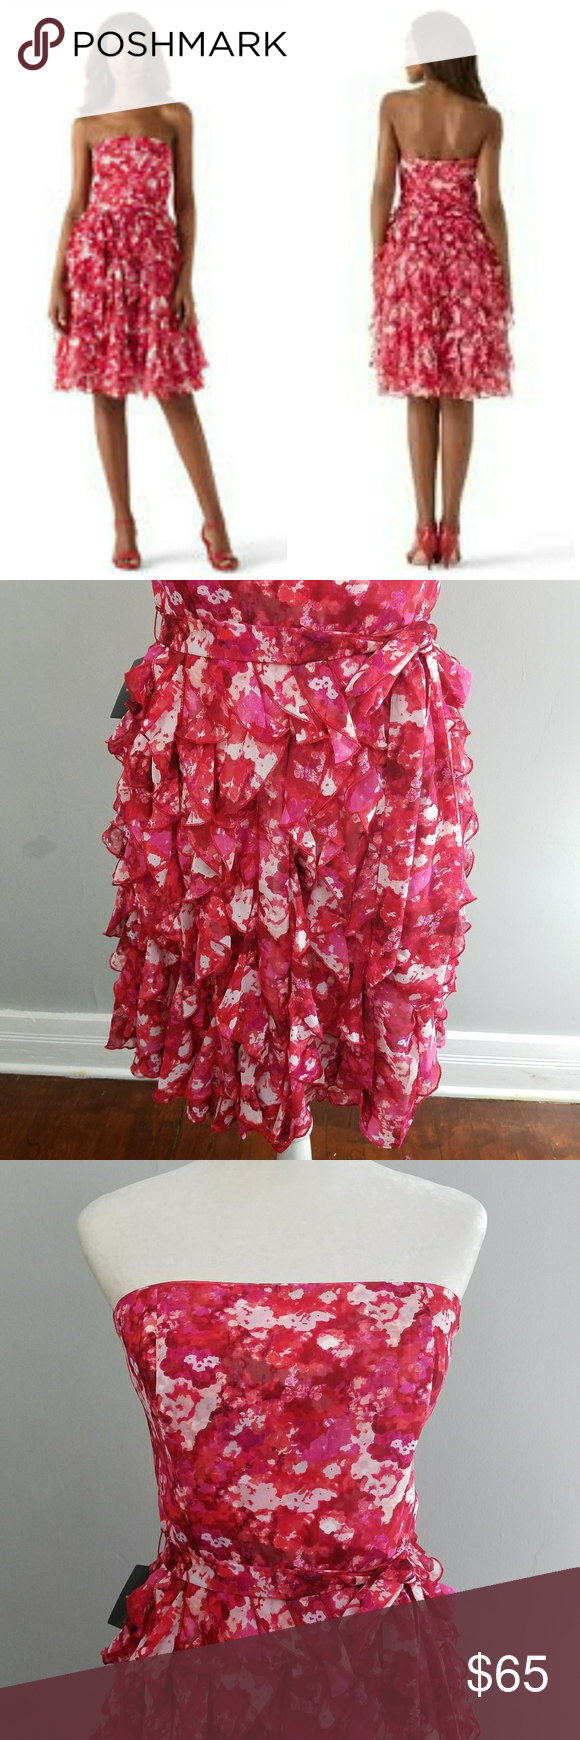 Nwt whbm red floral ruffle dress ruffle dress white house black